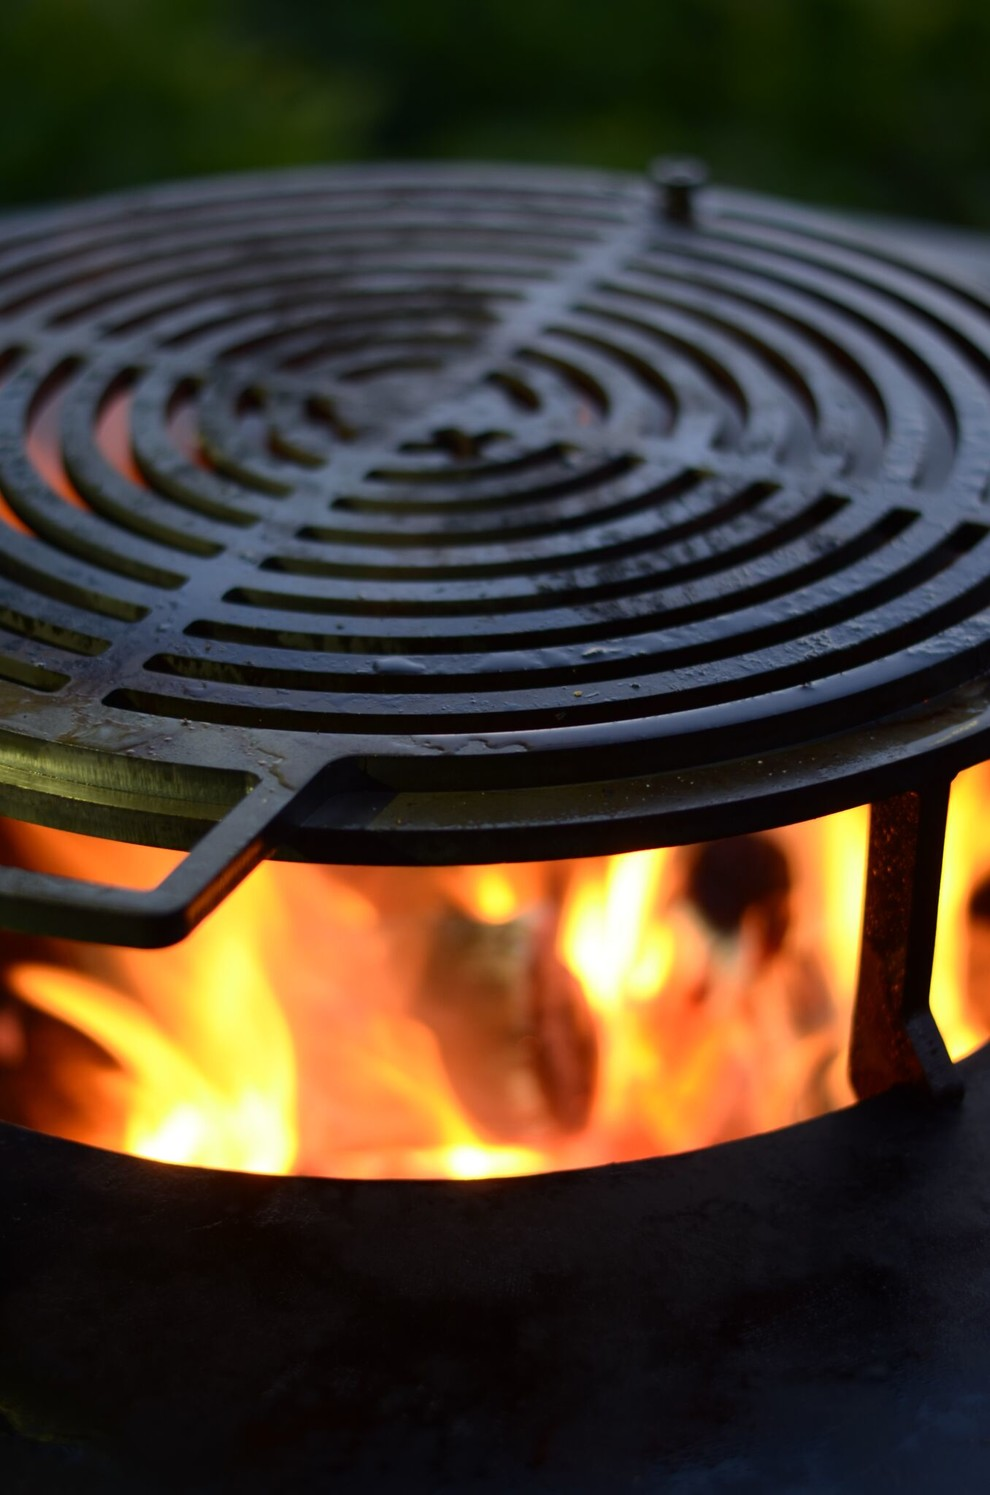 Grille Barbecue pour brasero Quoco Large GRILLL GRILLL